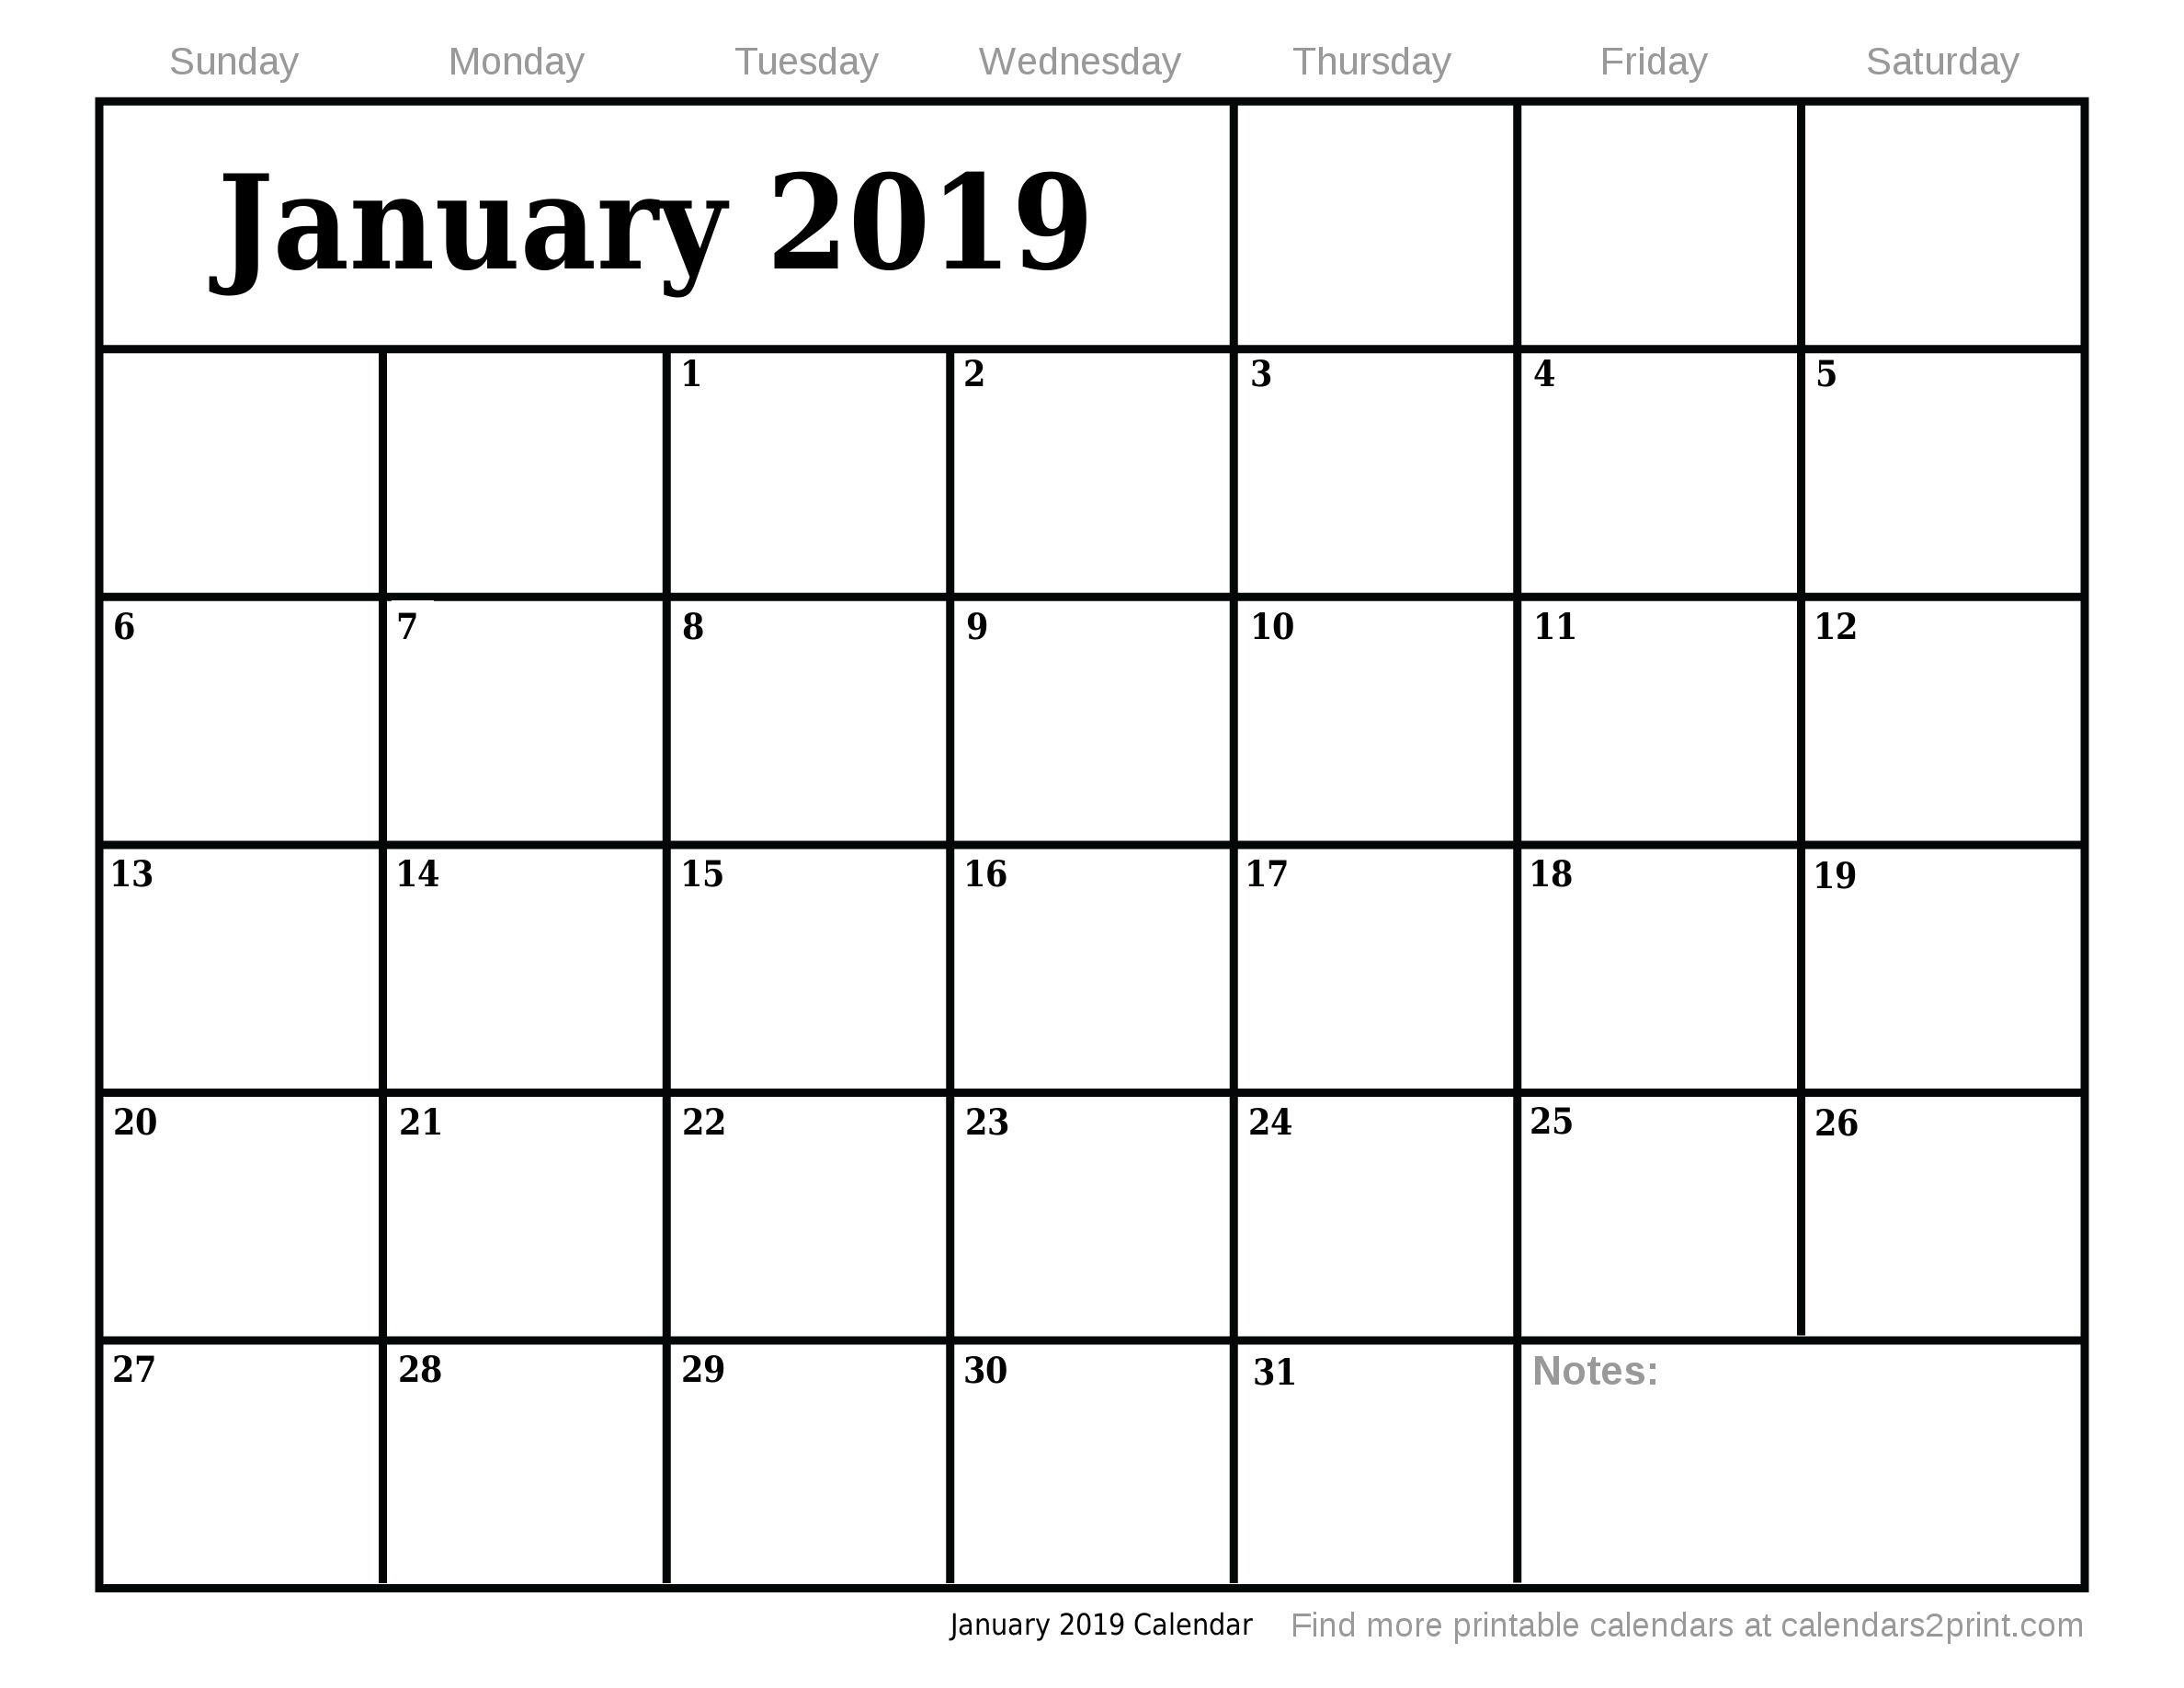 graphic about January Printable Calender referred to as January 2019 Printable Calendar, February 2019 Calendar